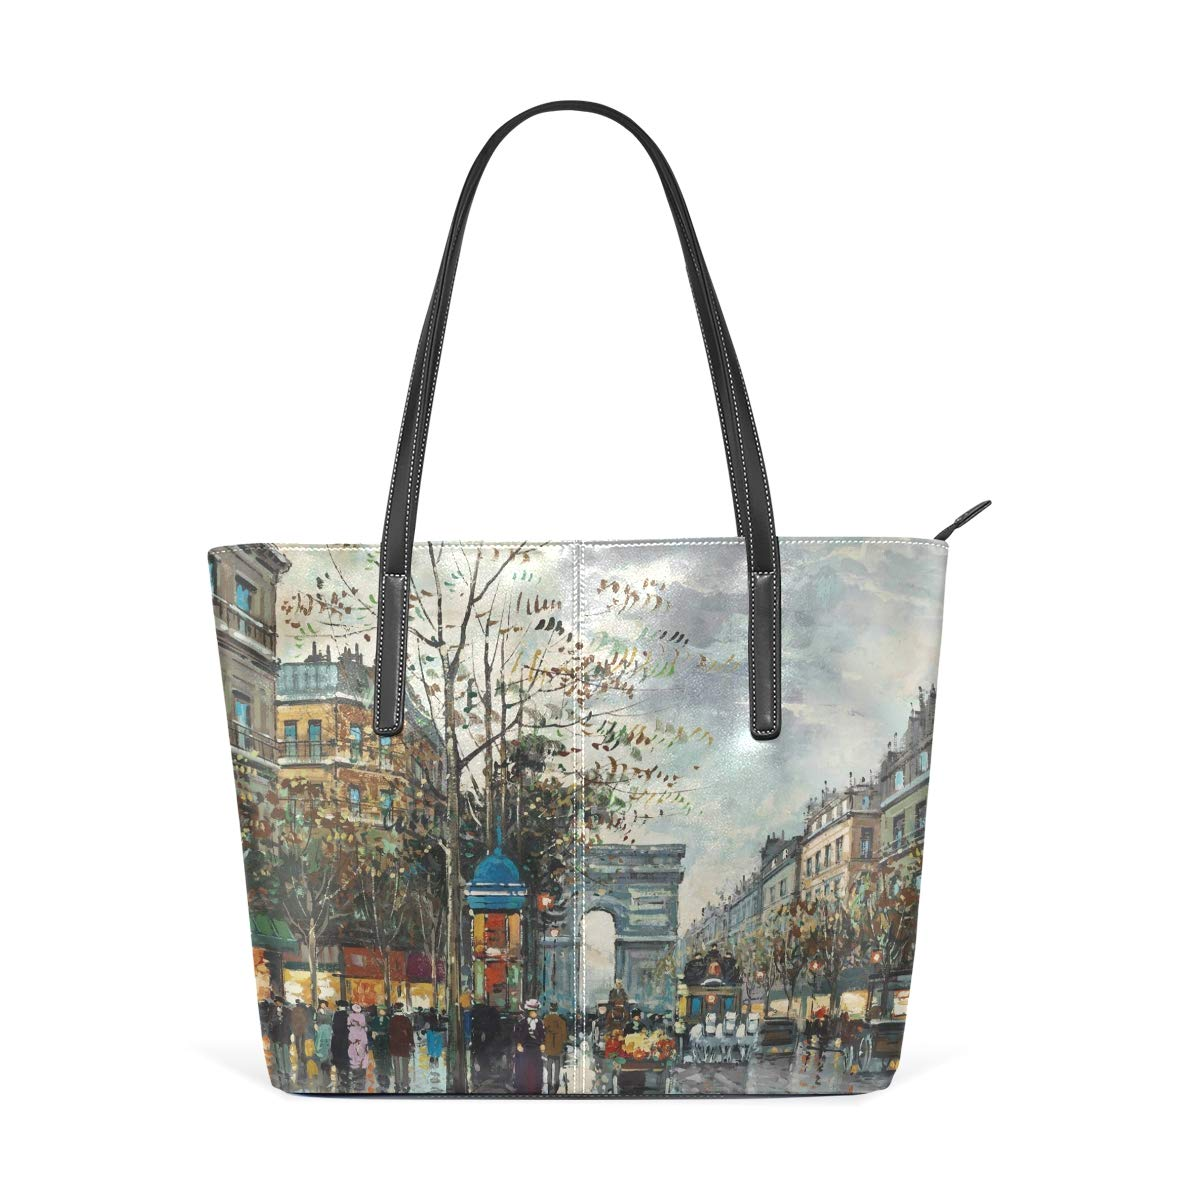 Paris Landscape Oil Painting Decorative Women's PU Leather Tote Shoulder Bags Handbags Casual Bag